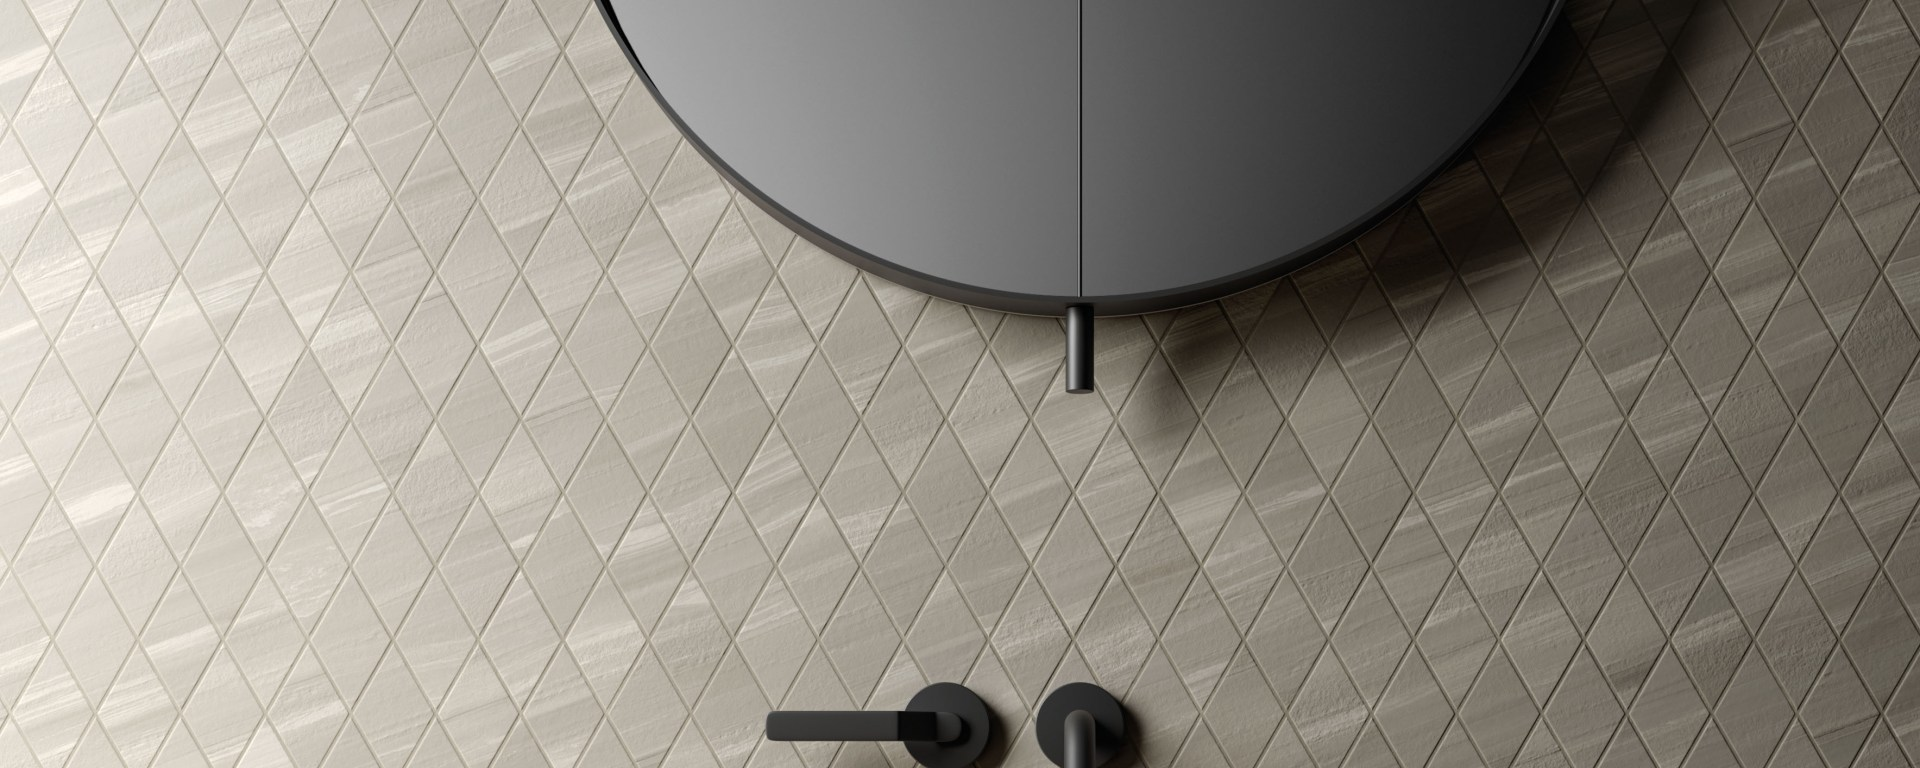 ItalGraniti Hematite Coverings new tile collection